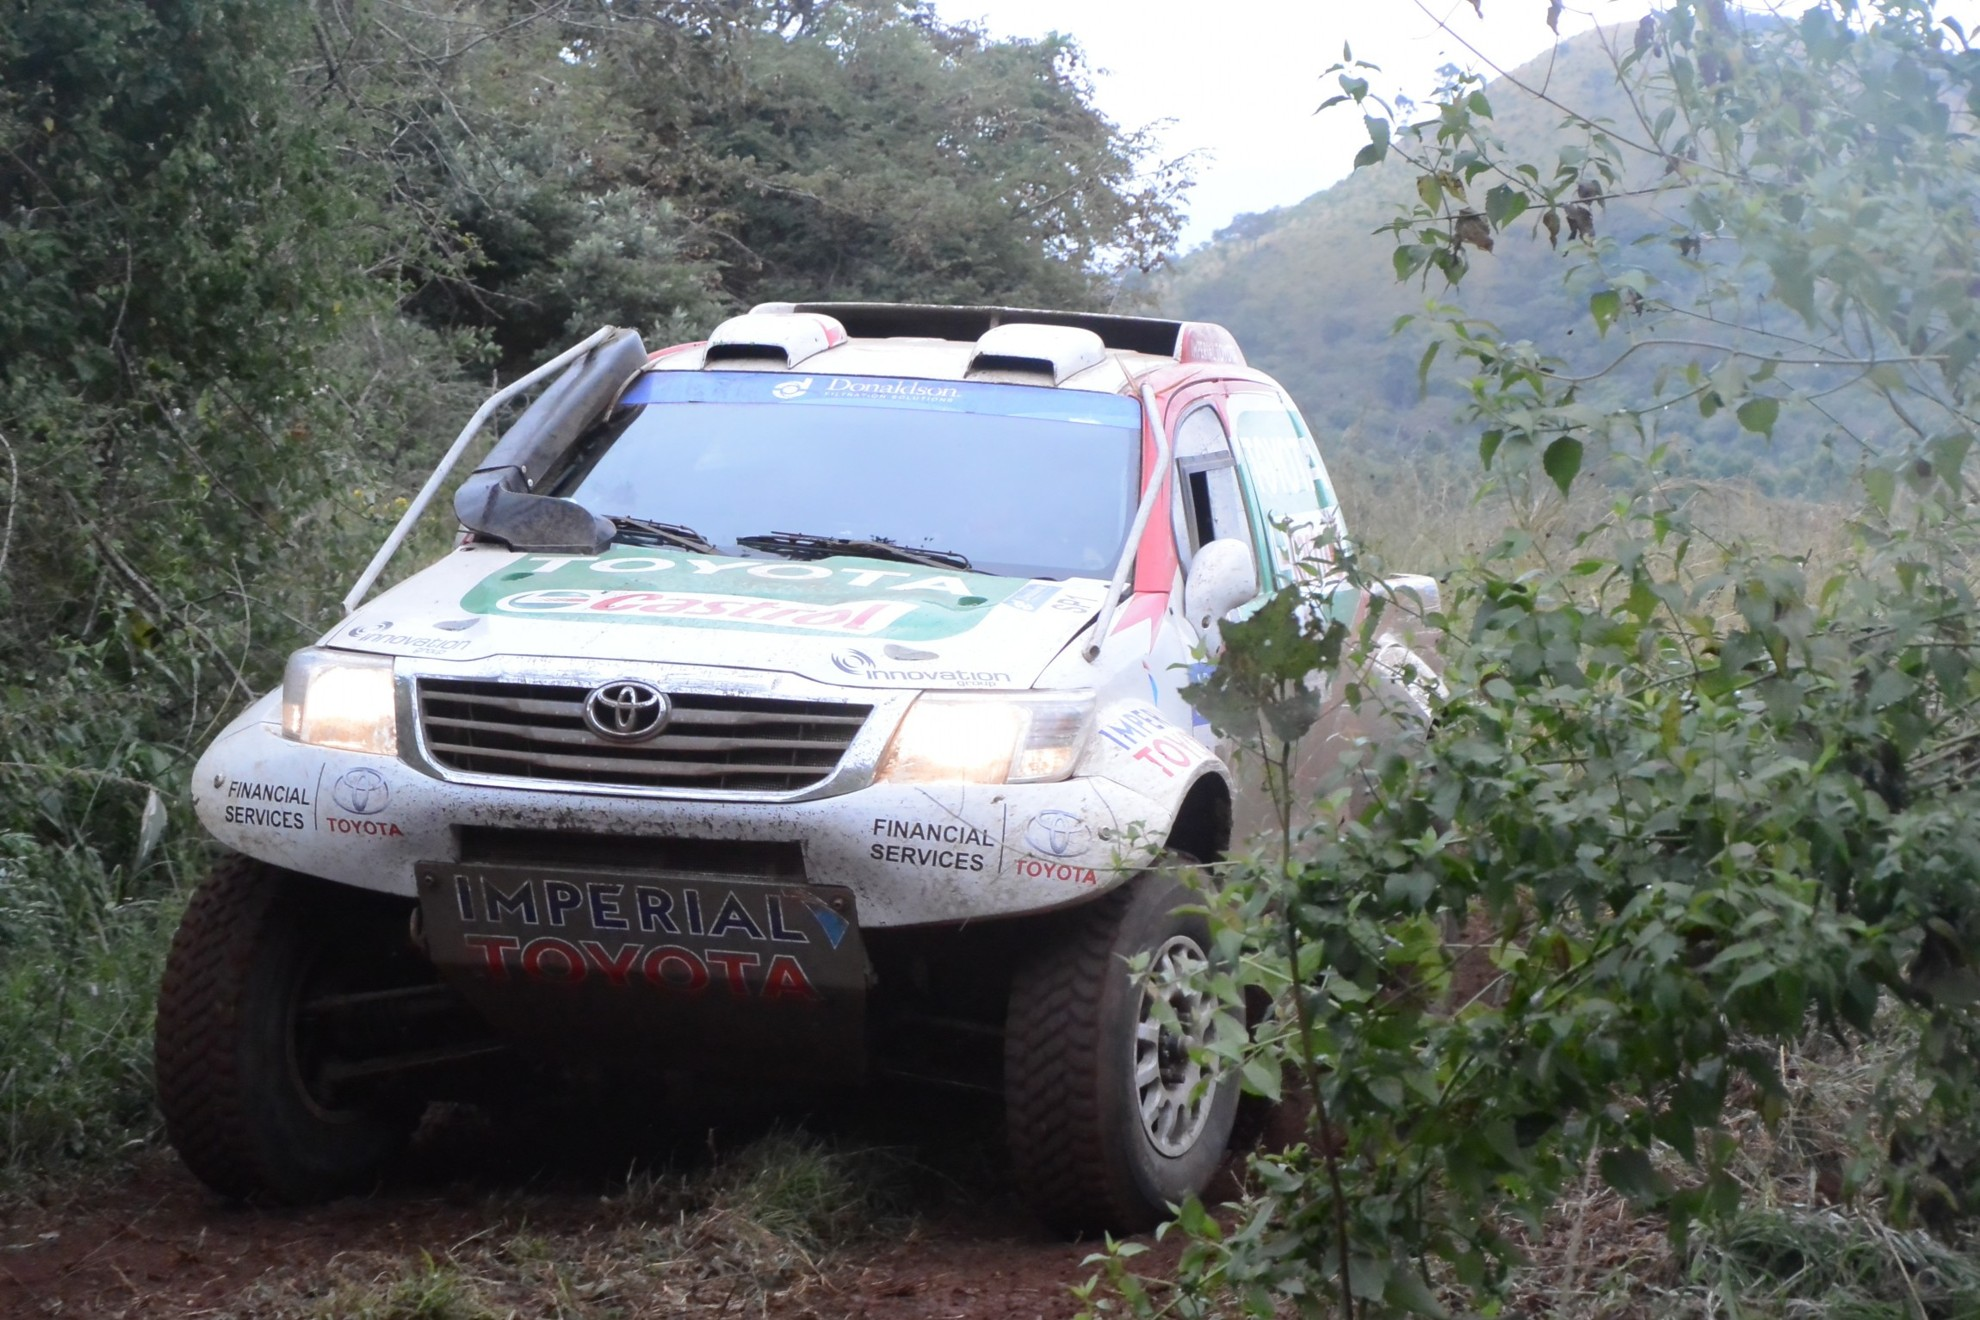 Toyota Rally 2013 South Africa